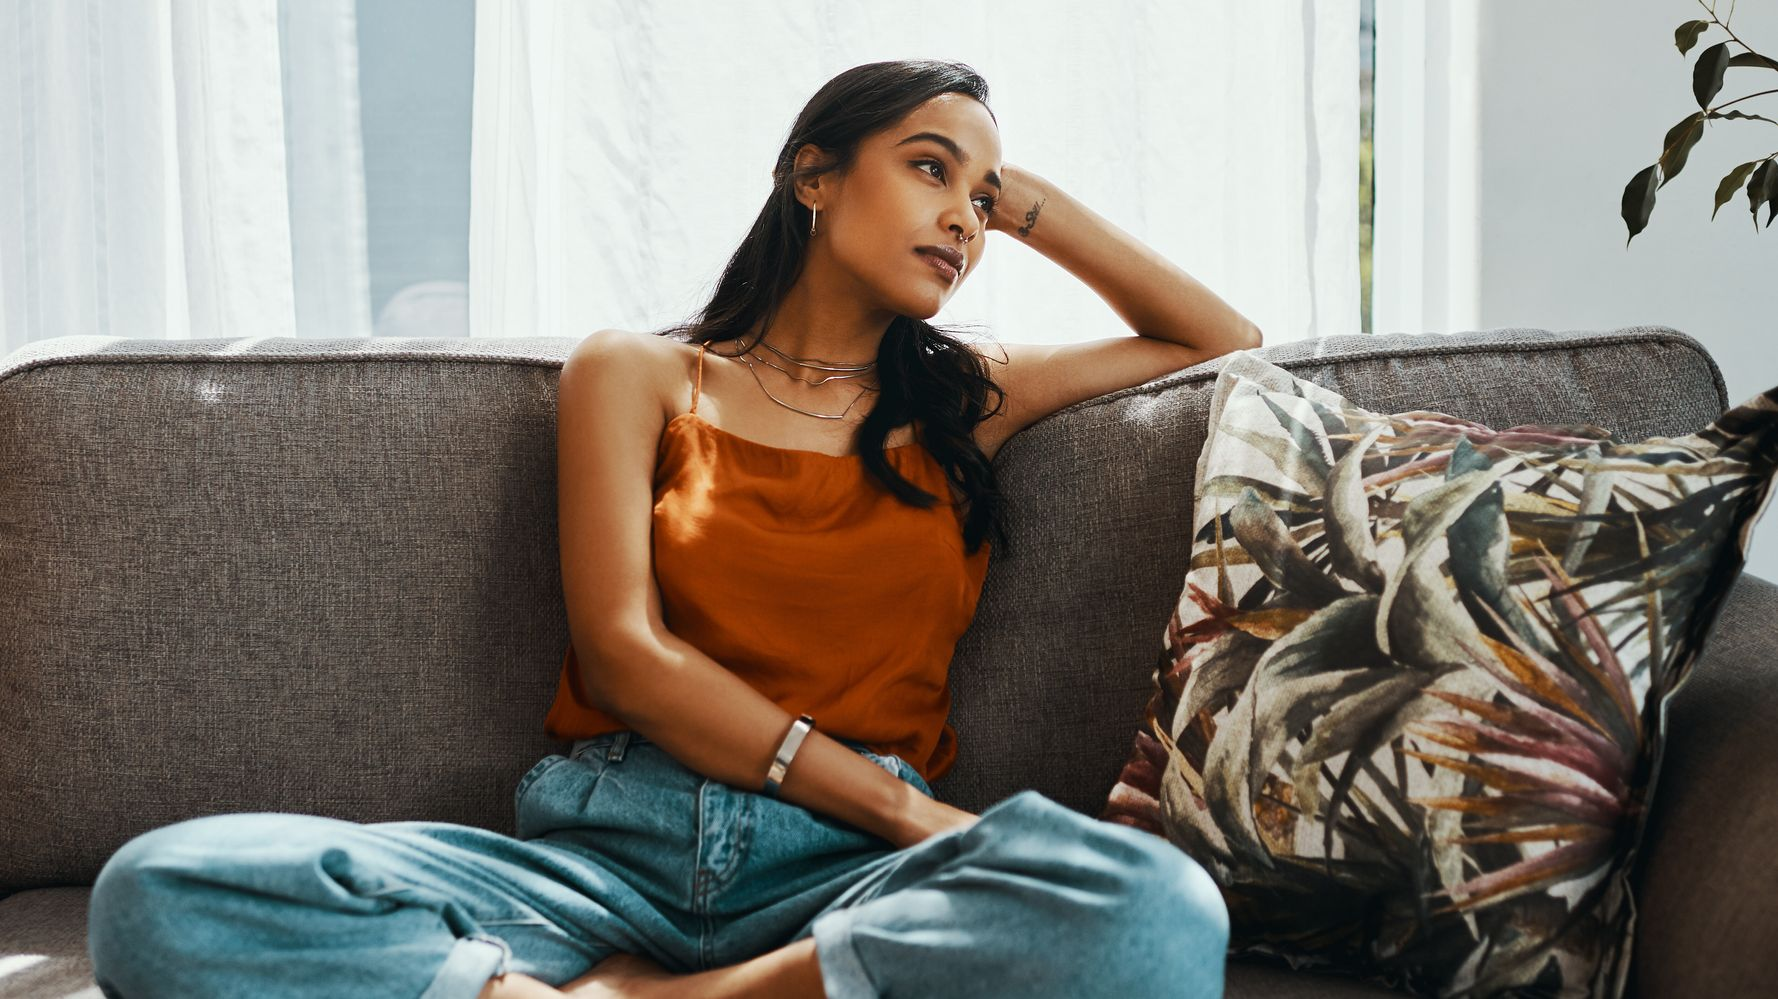 6 Questions To Ask Instead Of 'How Are You?', According To Therapists